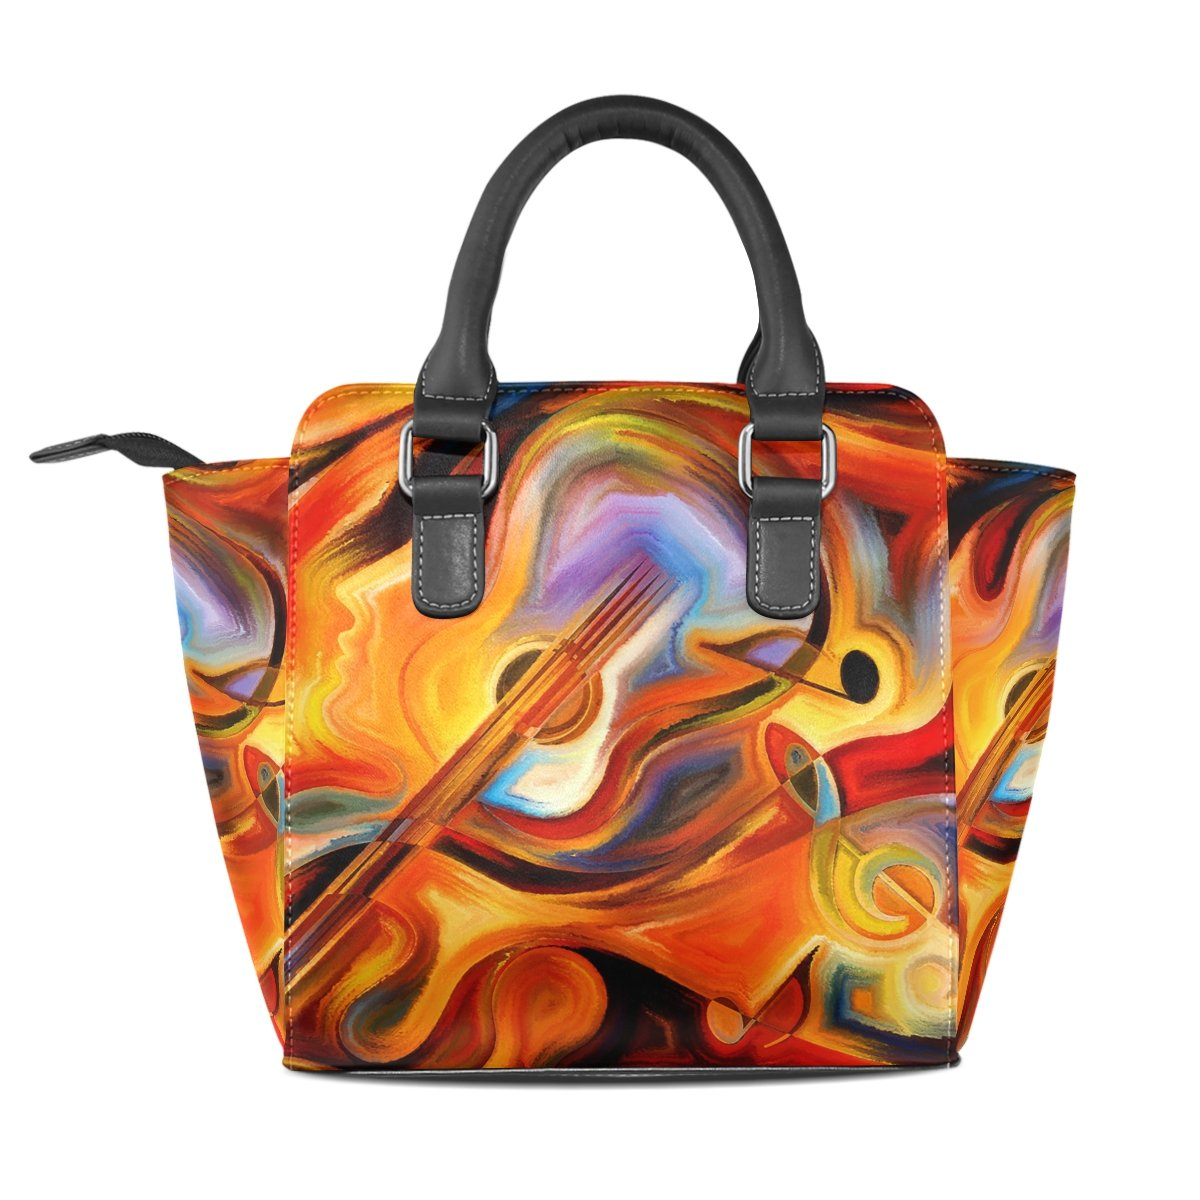 Jennifer PU Leather Top-Handle Handbags Abstract Colorful Melody Piano And Music Notes Single-Shoulder Tote Crossbody Bag Messenger Bags For Women